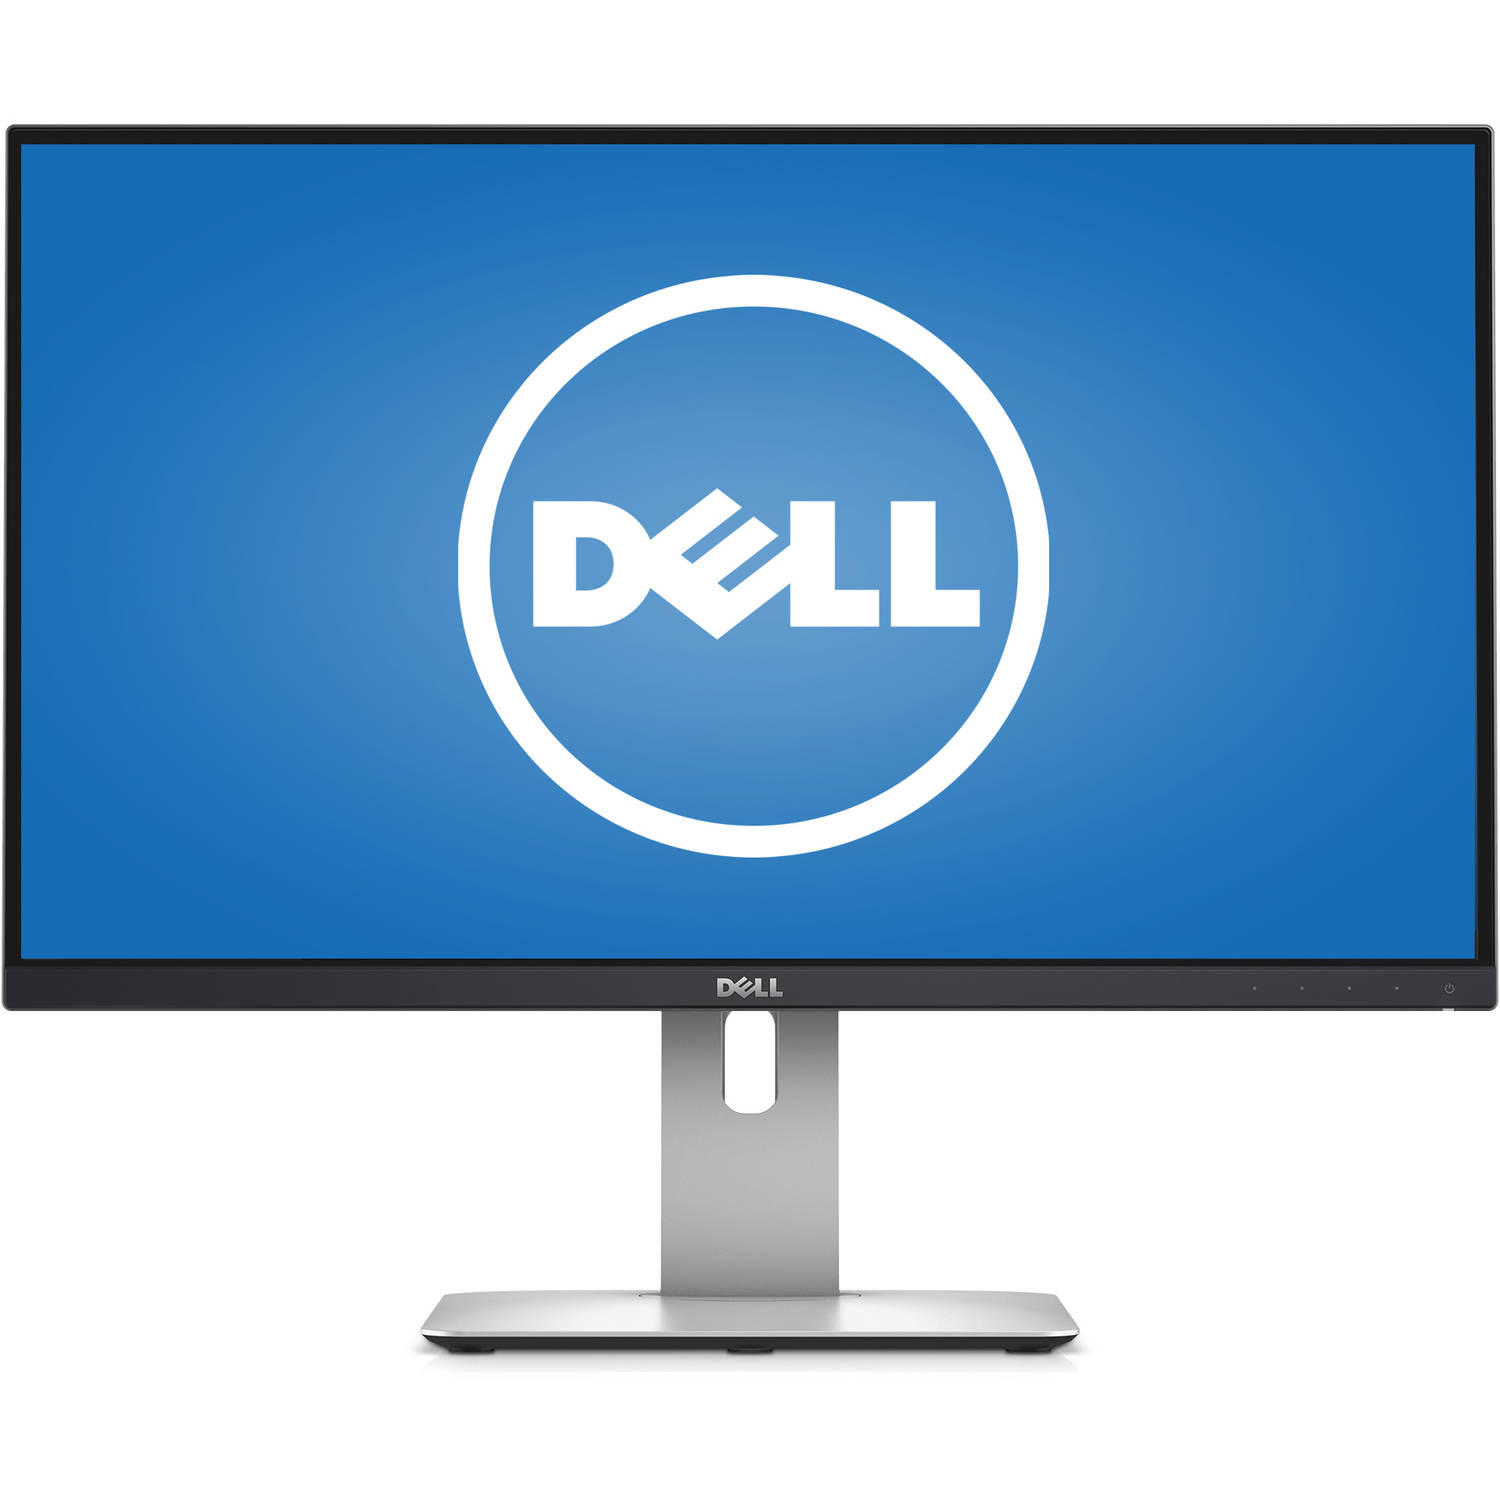 "Dell 27"" LCD LED Widescreen Monitor (SE2717Hx Black)"